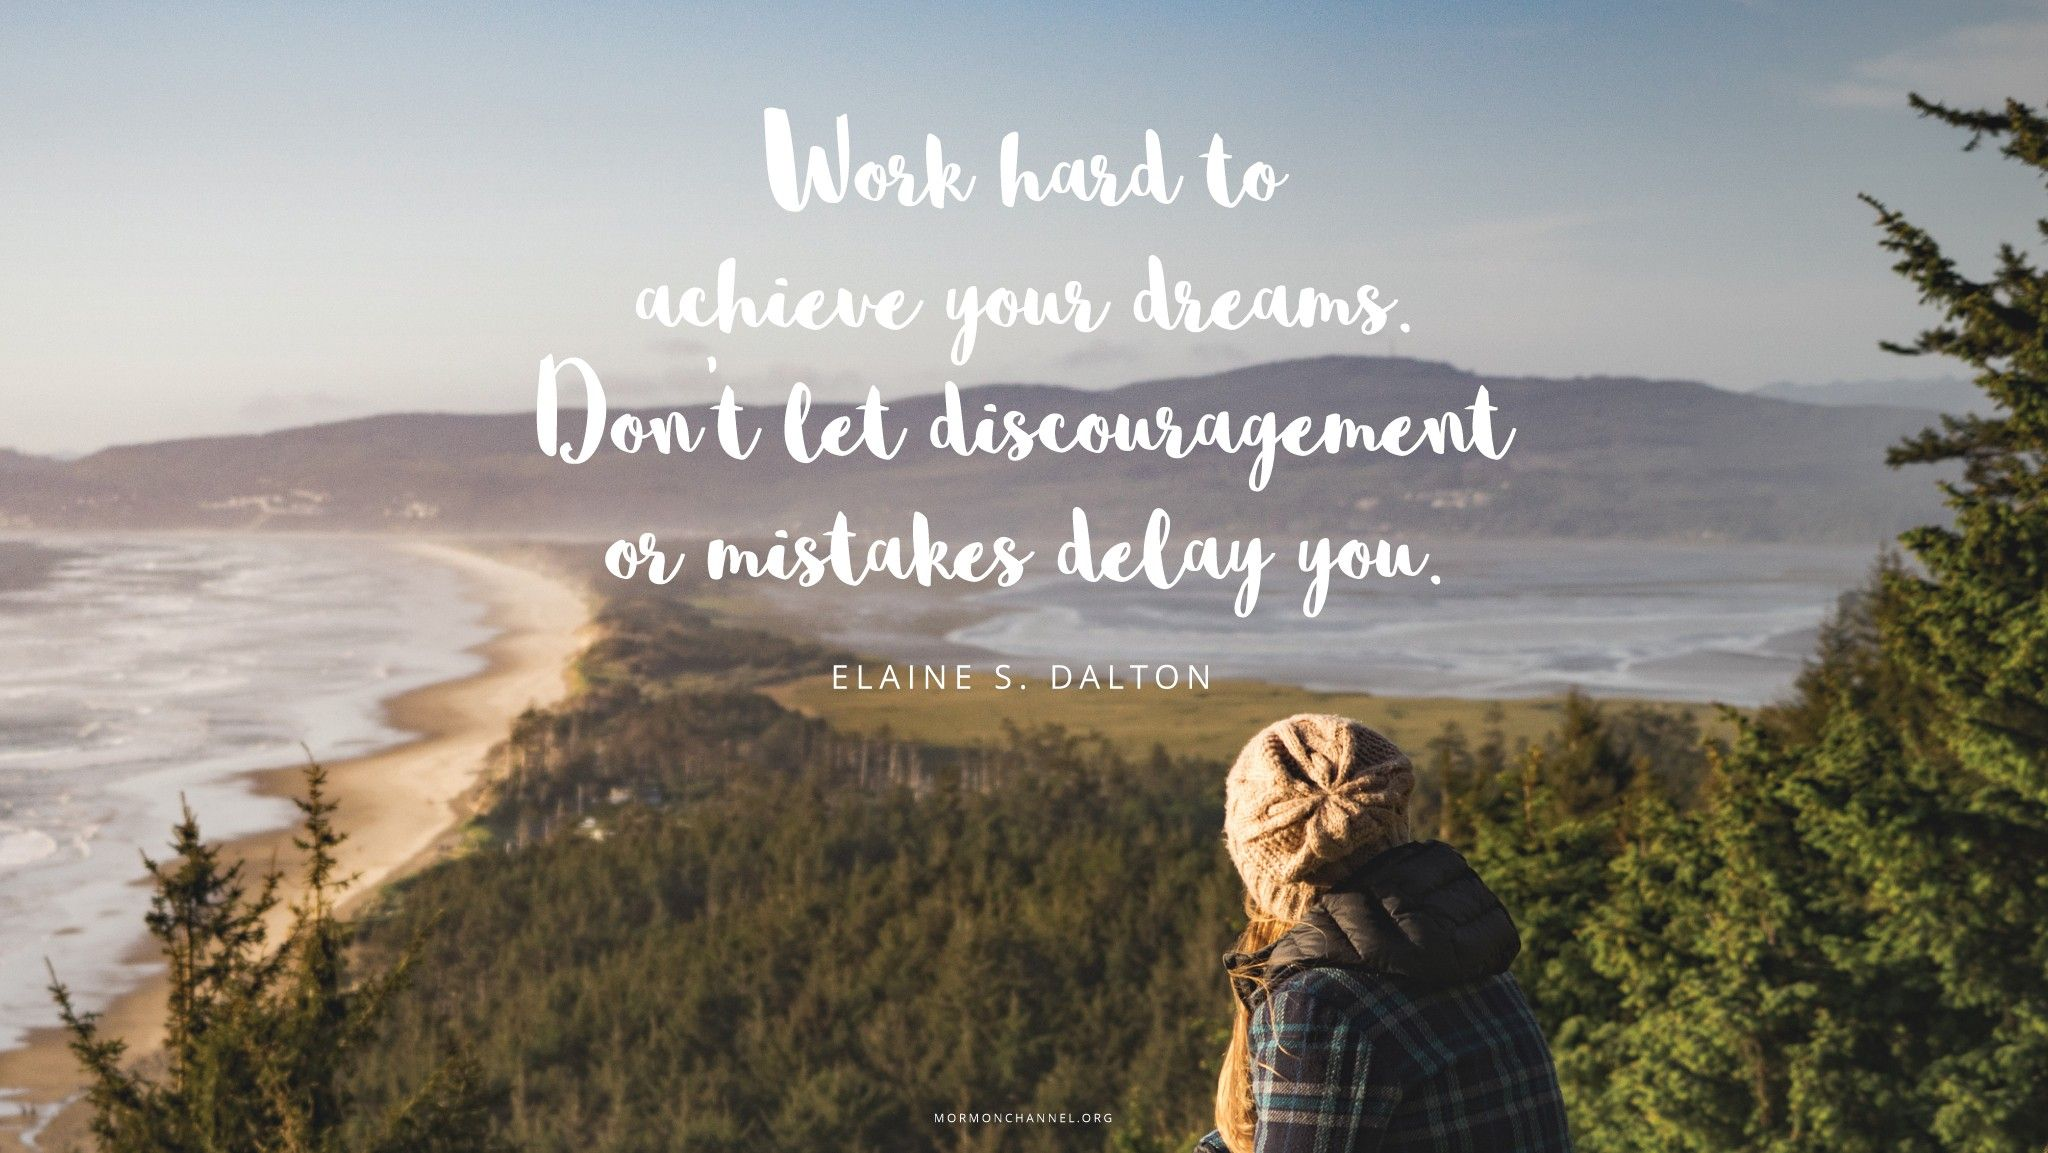 """""""Work hard to achieve your dreams. Don't let discouragement or mistakes delay you.""""—Sister Elaine S. Dalton, """"How to Dare Great Things"""""""